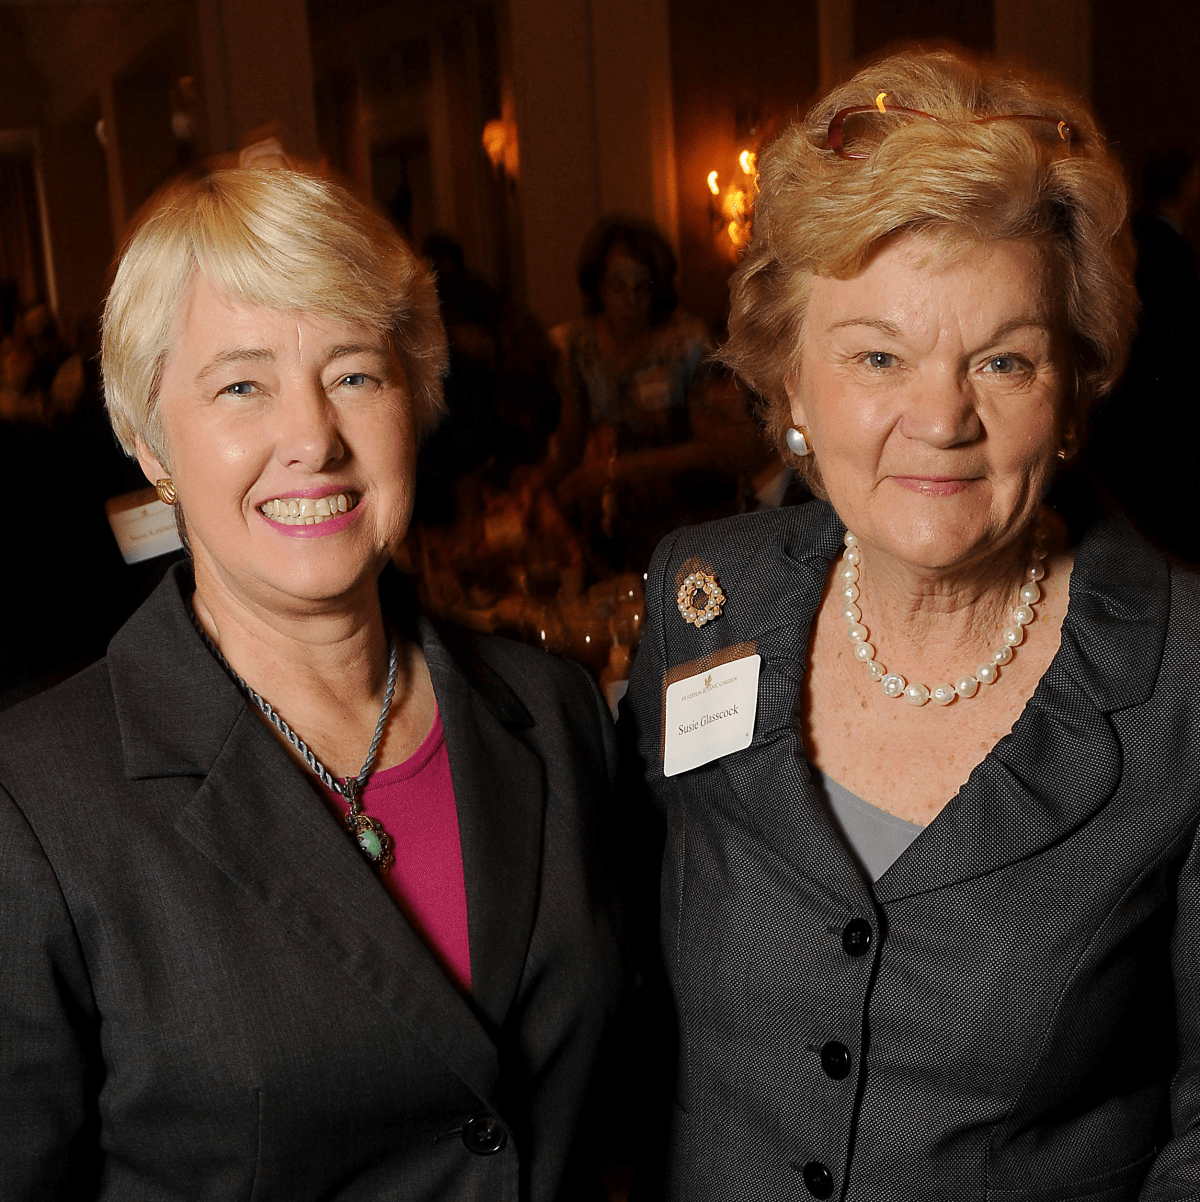 News, Shelby, Houston Botanic Garden Lunch, Sept. 2015, Mayor Annise Parker, Susie Glasscock